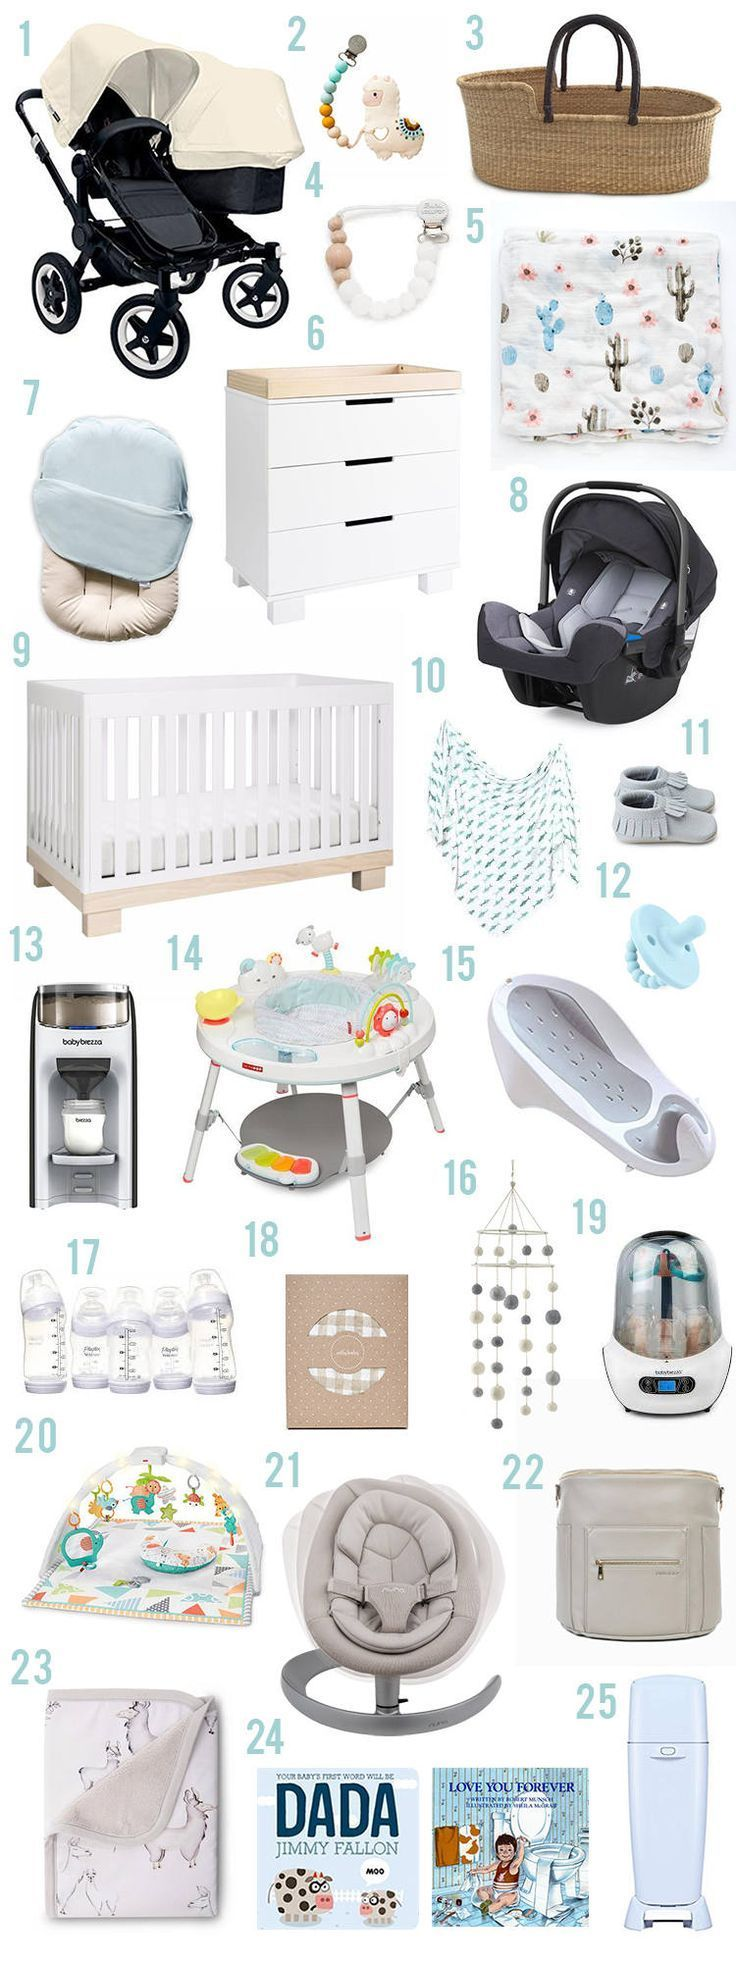 The 25 best baby products of 2019   Baby boy registry, New ...